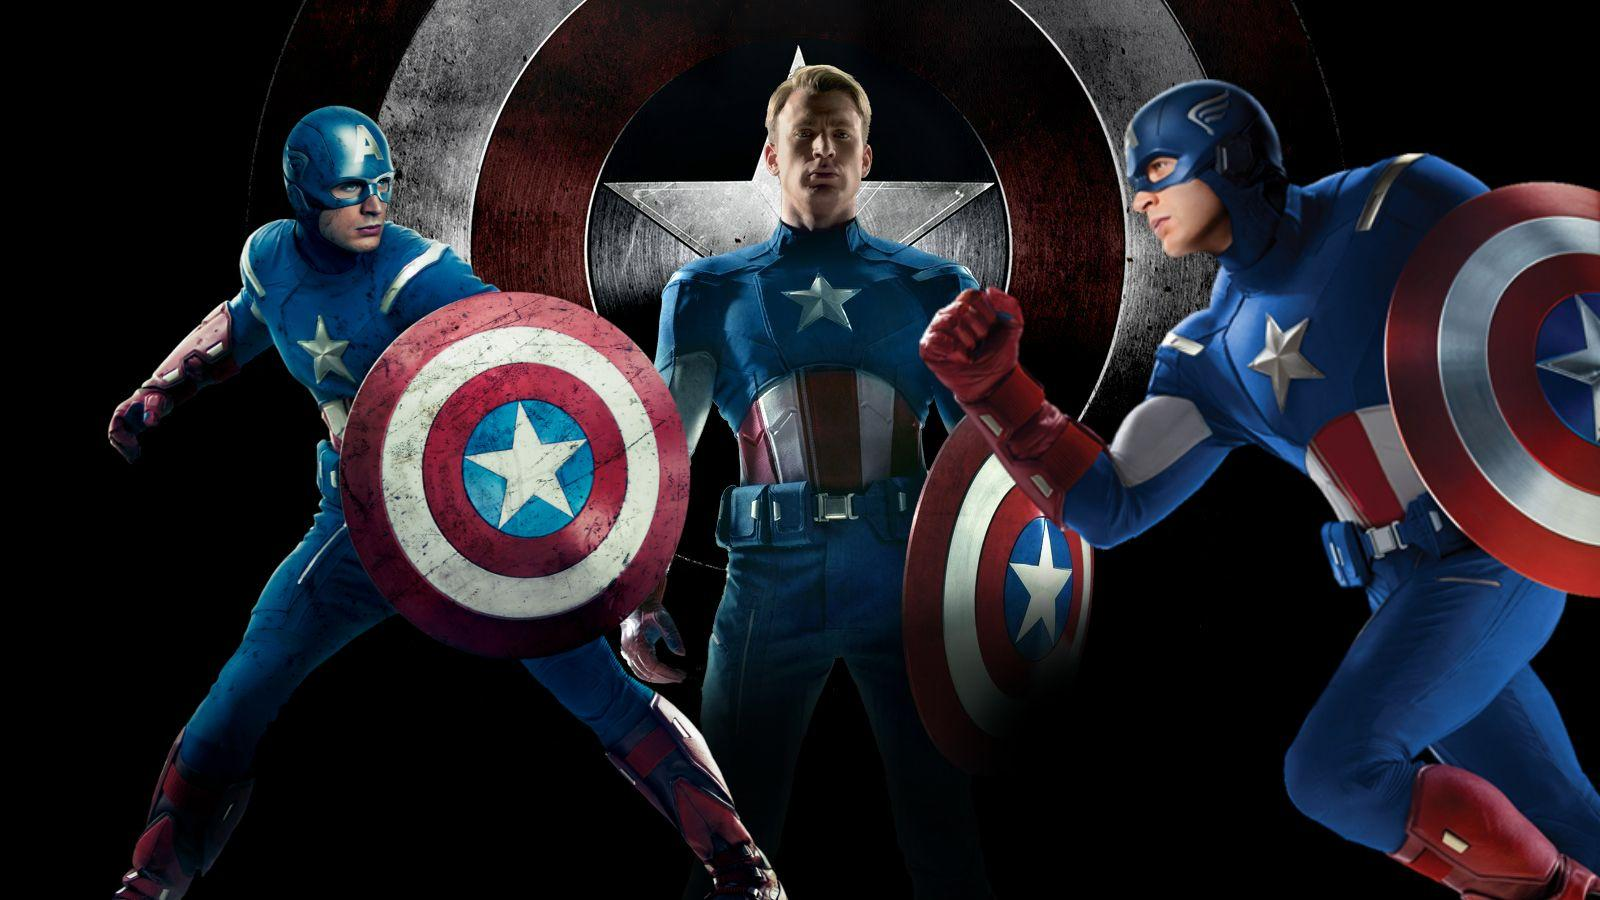 The Avengers Captain America Wallpapers HD